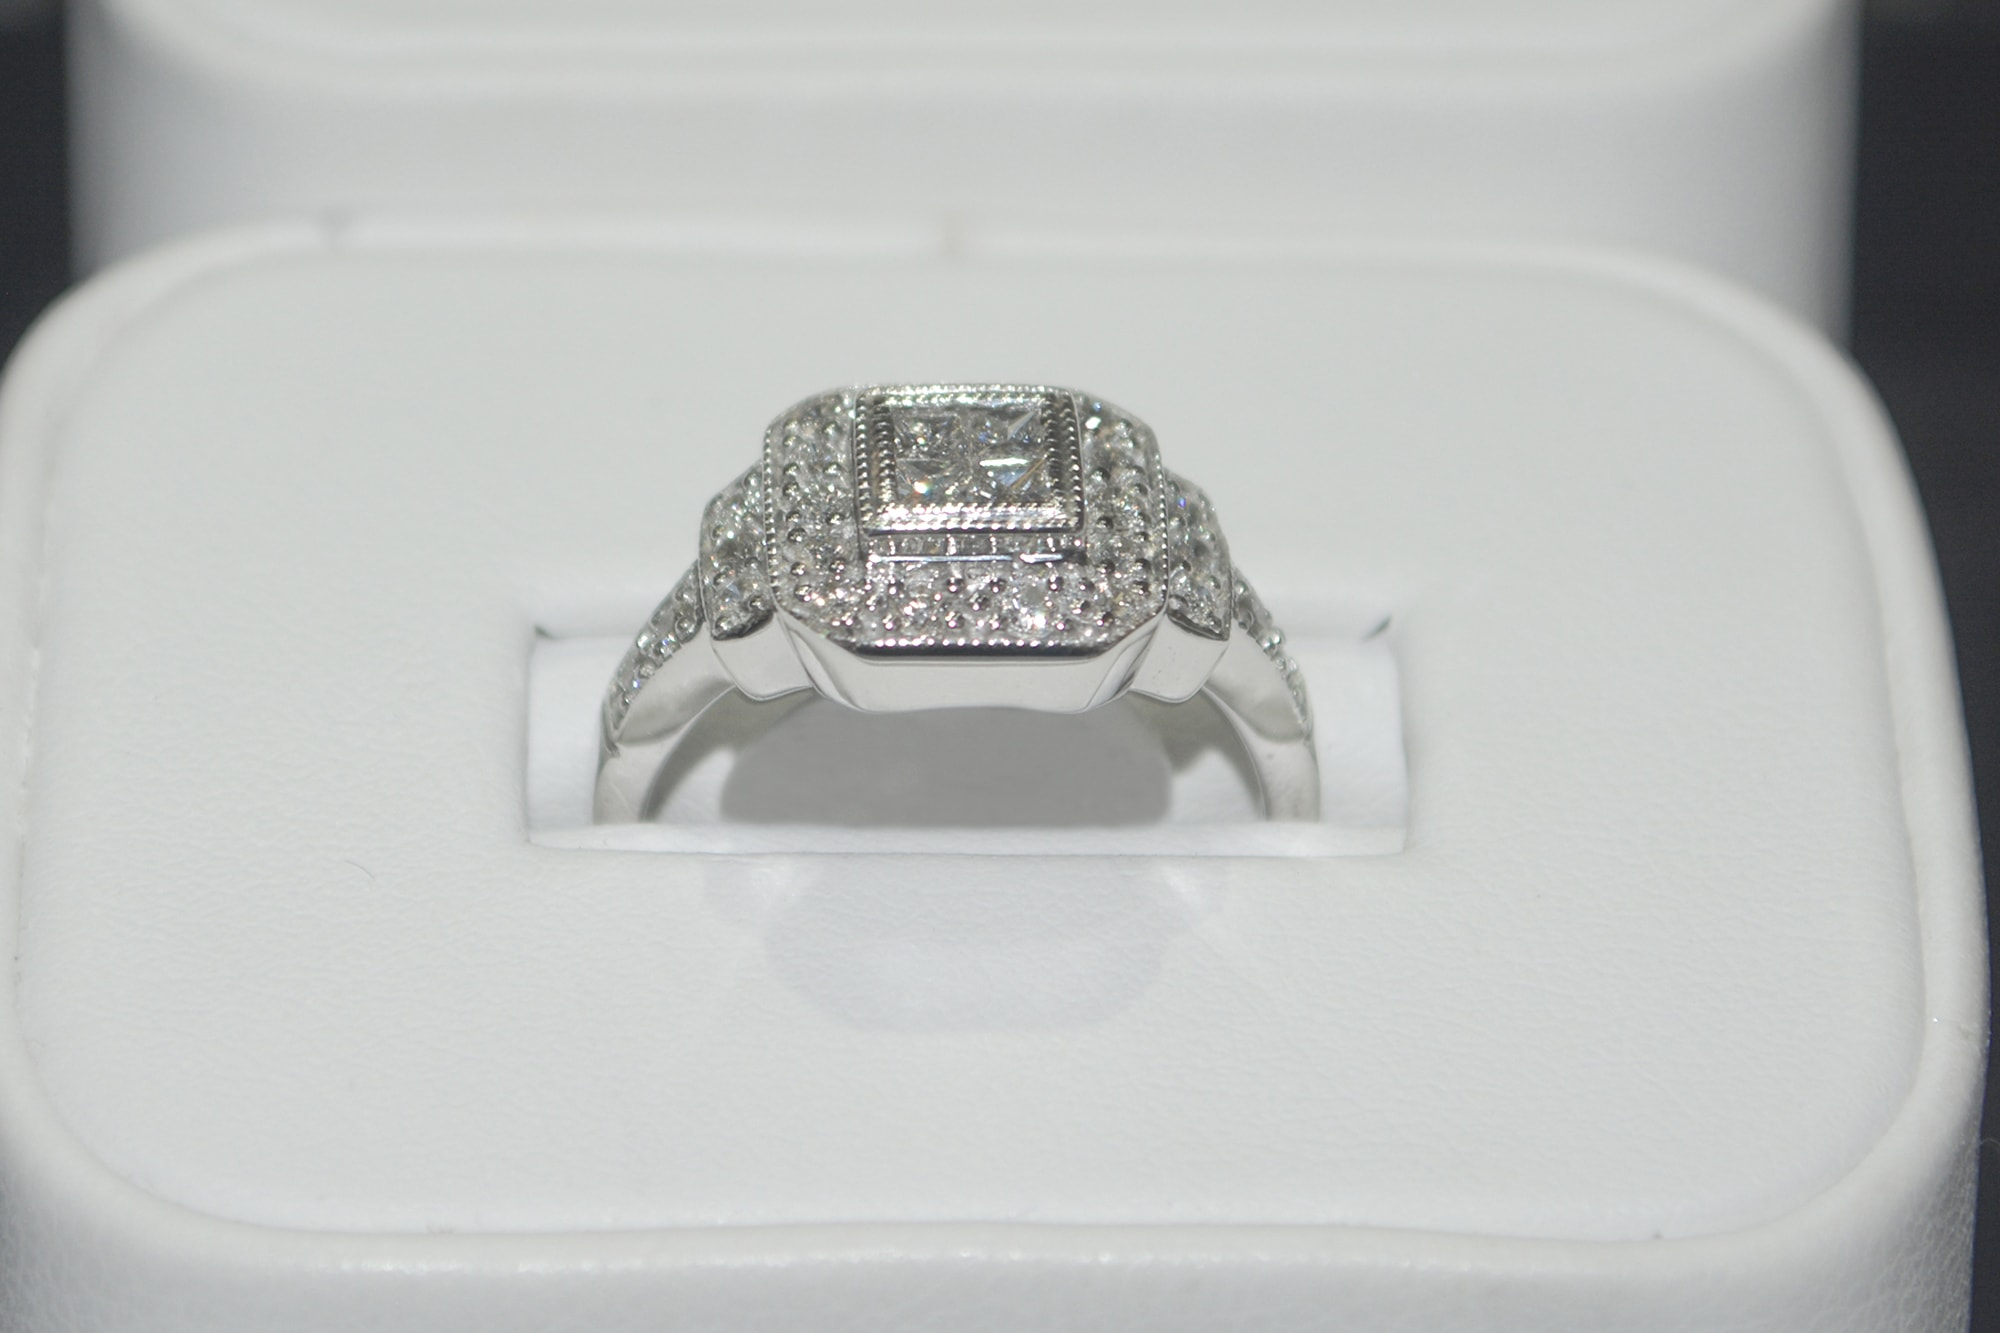 Christmas Shopping At Crowne Jewelers: Silver, Gold, Diamonds & More!